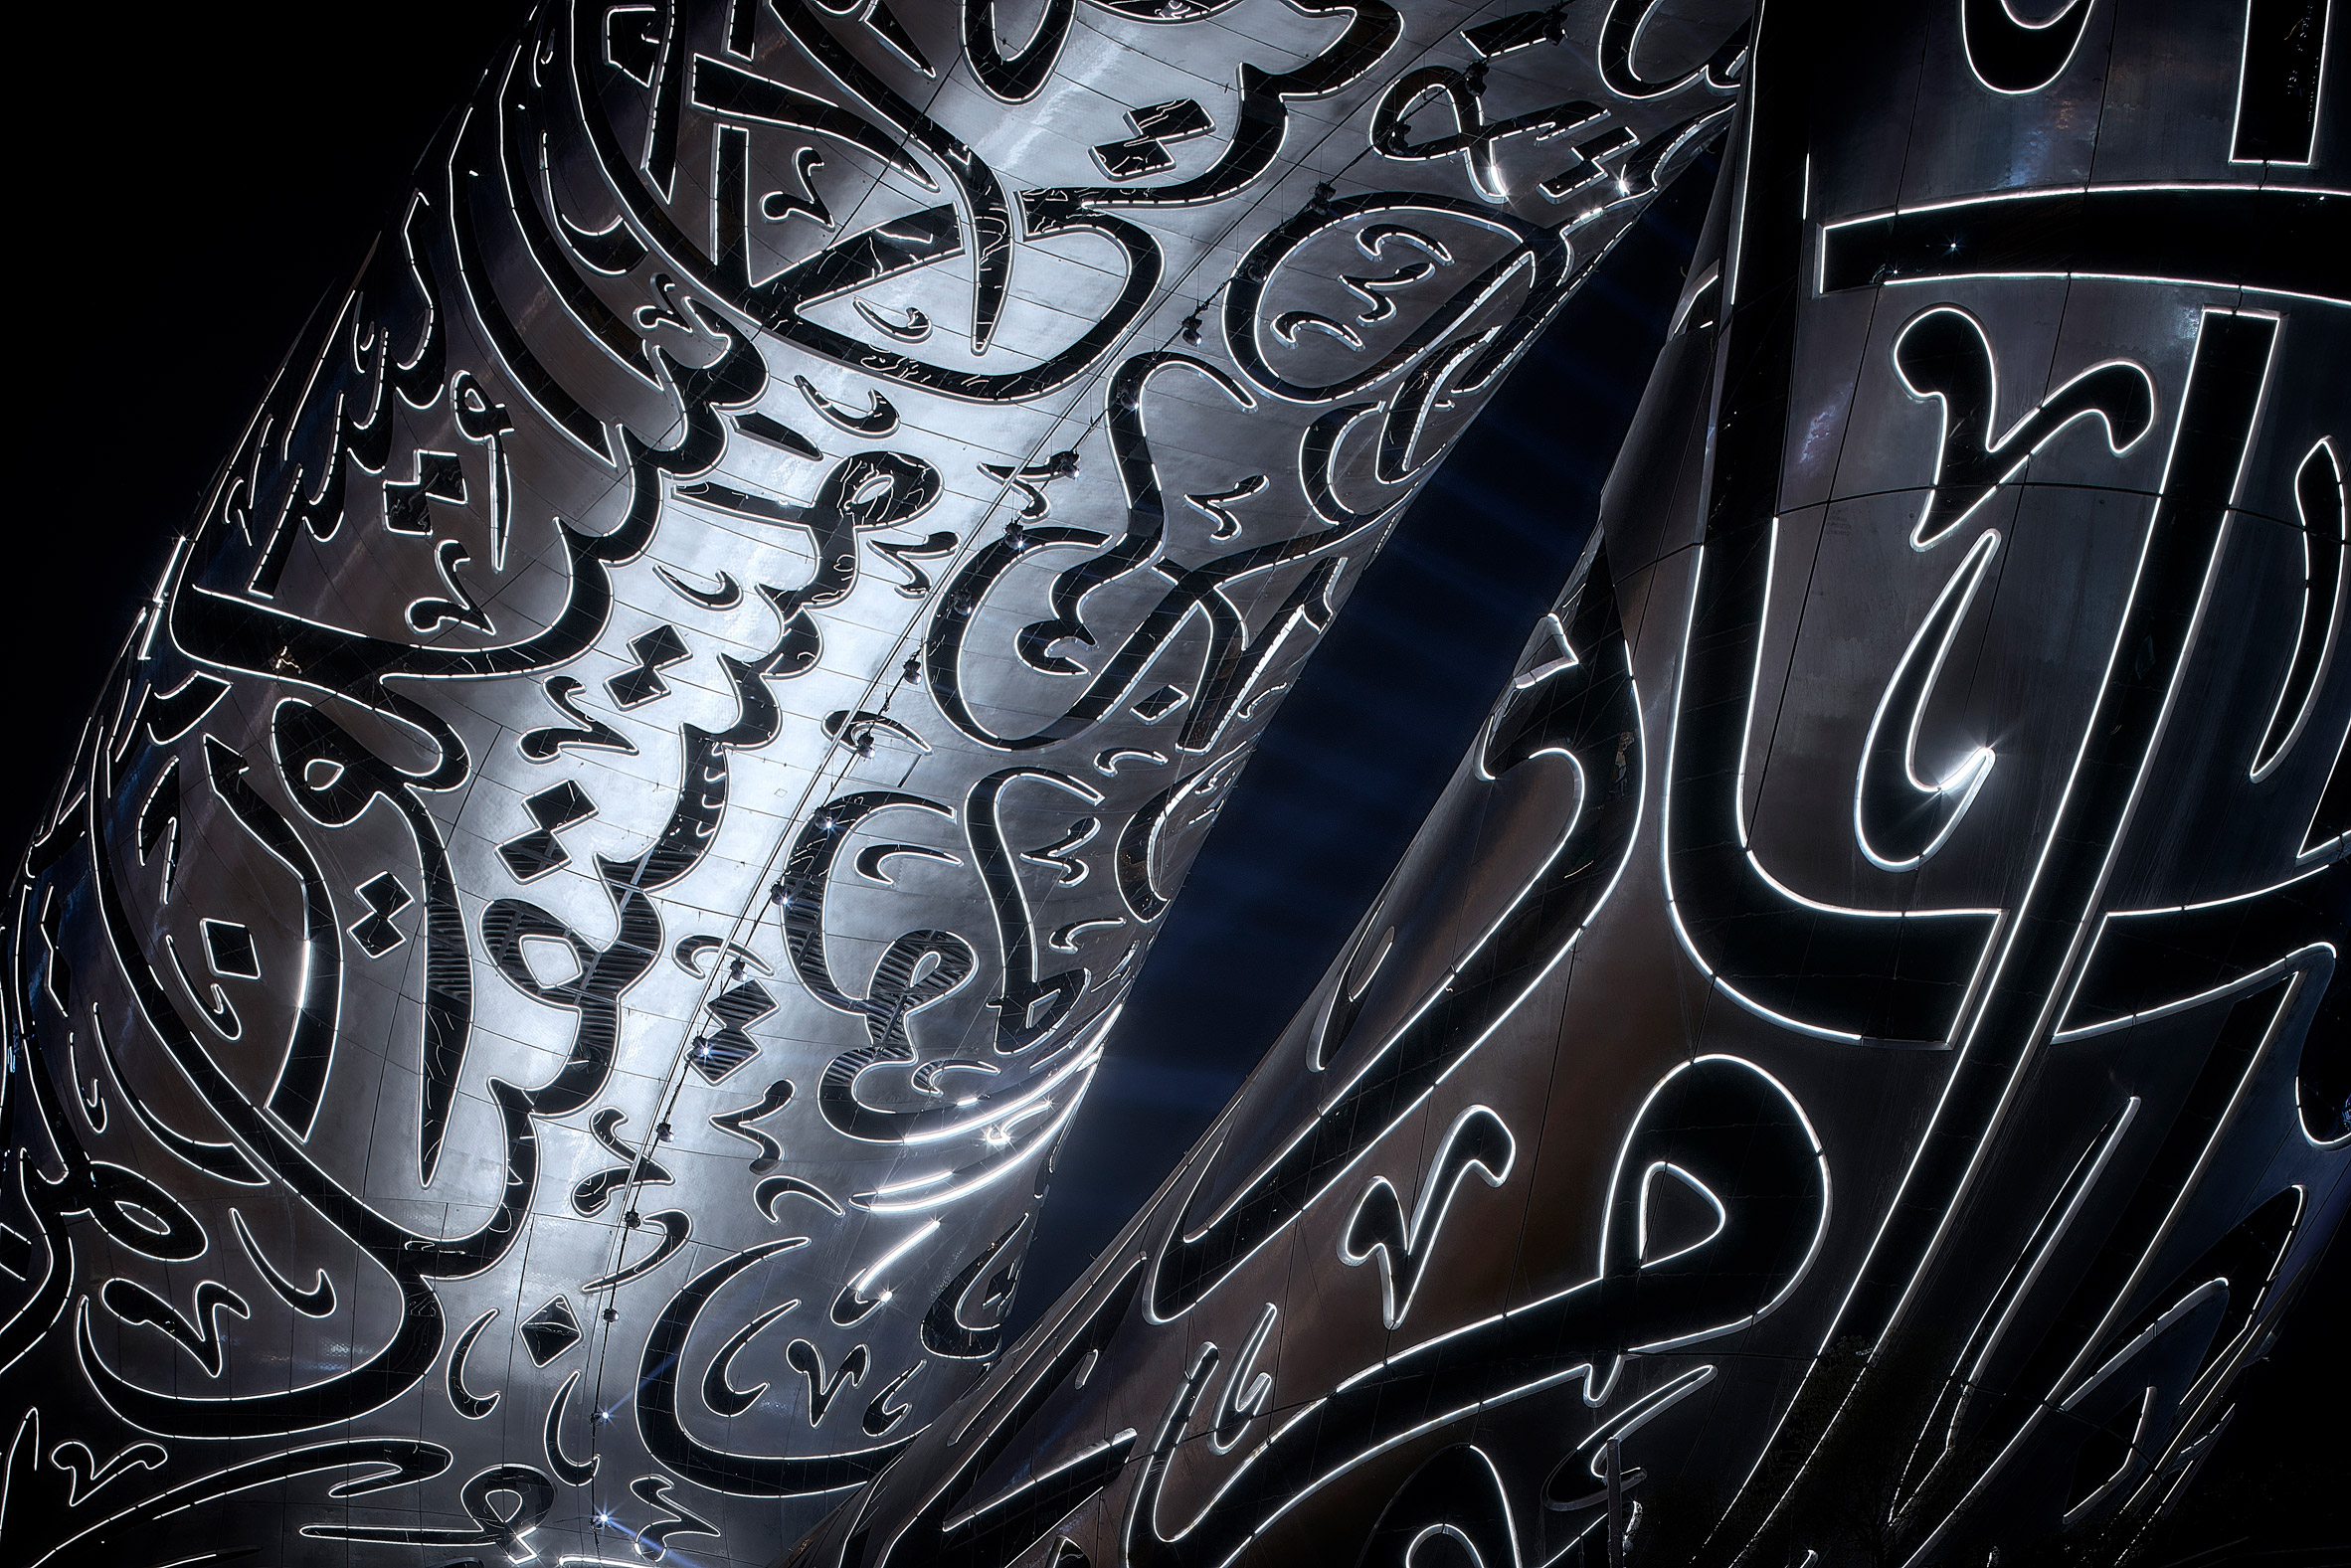 Calligraphy on Museum of the Future